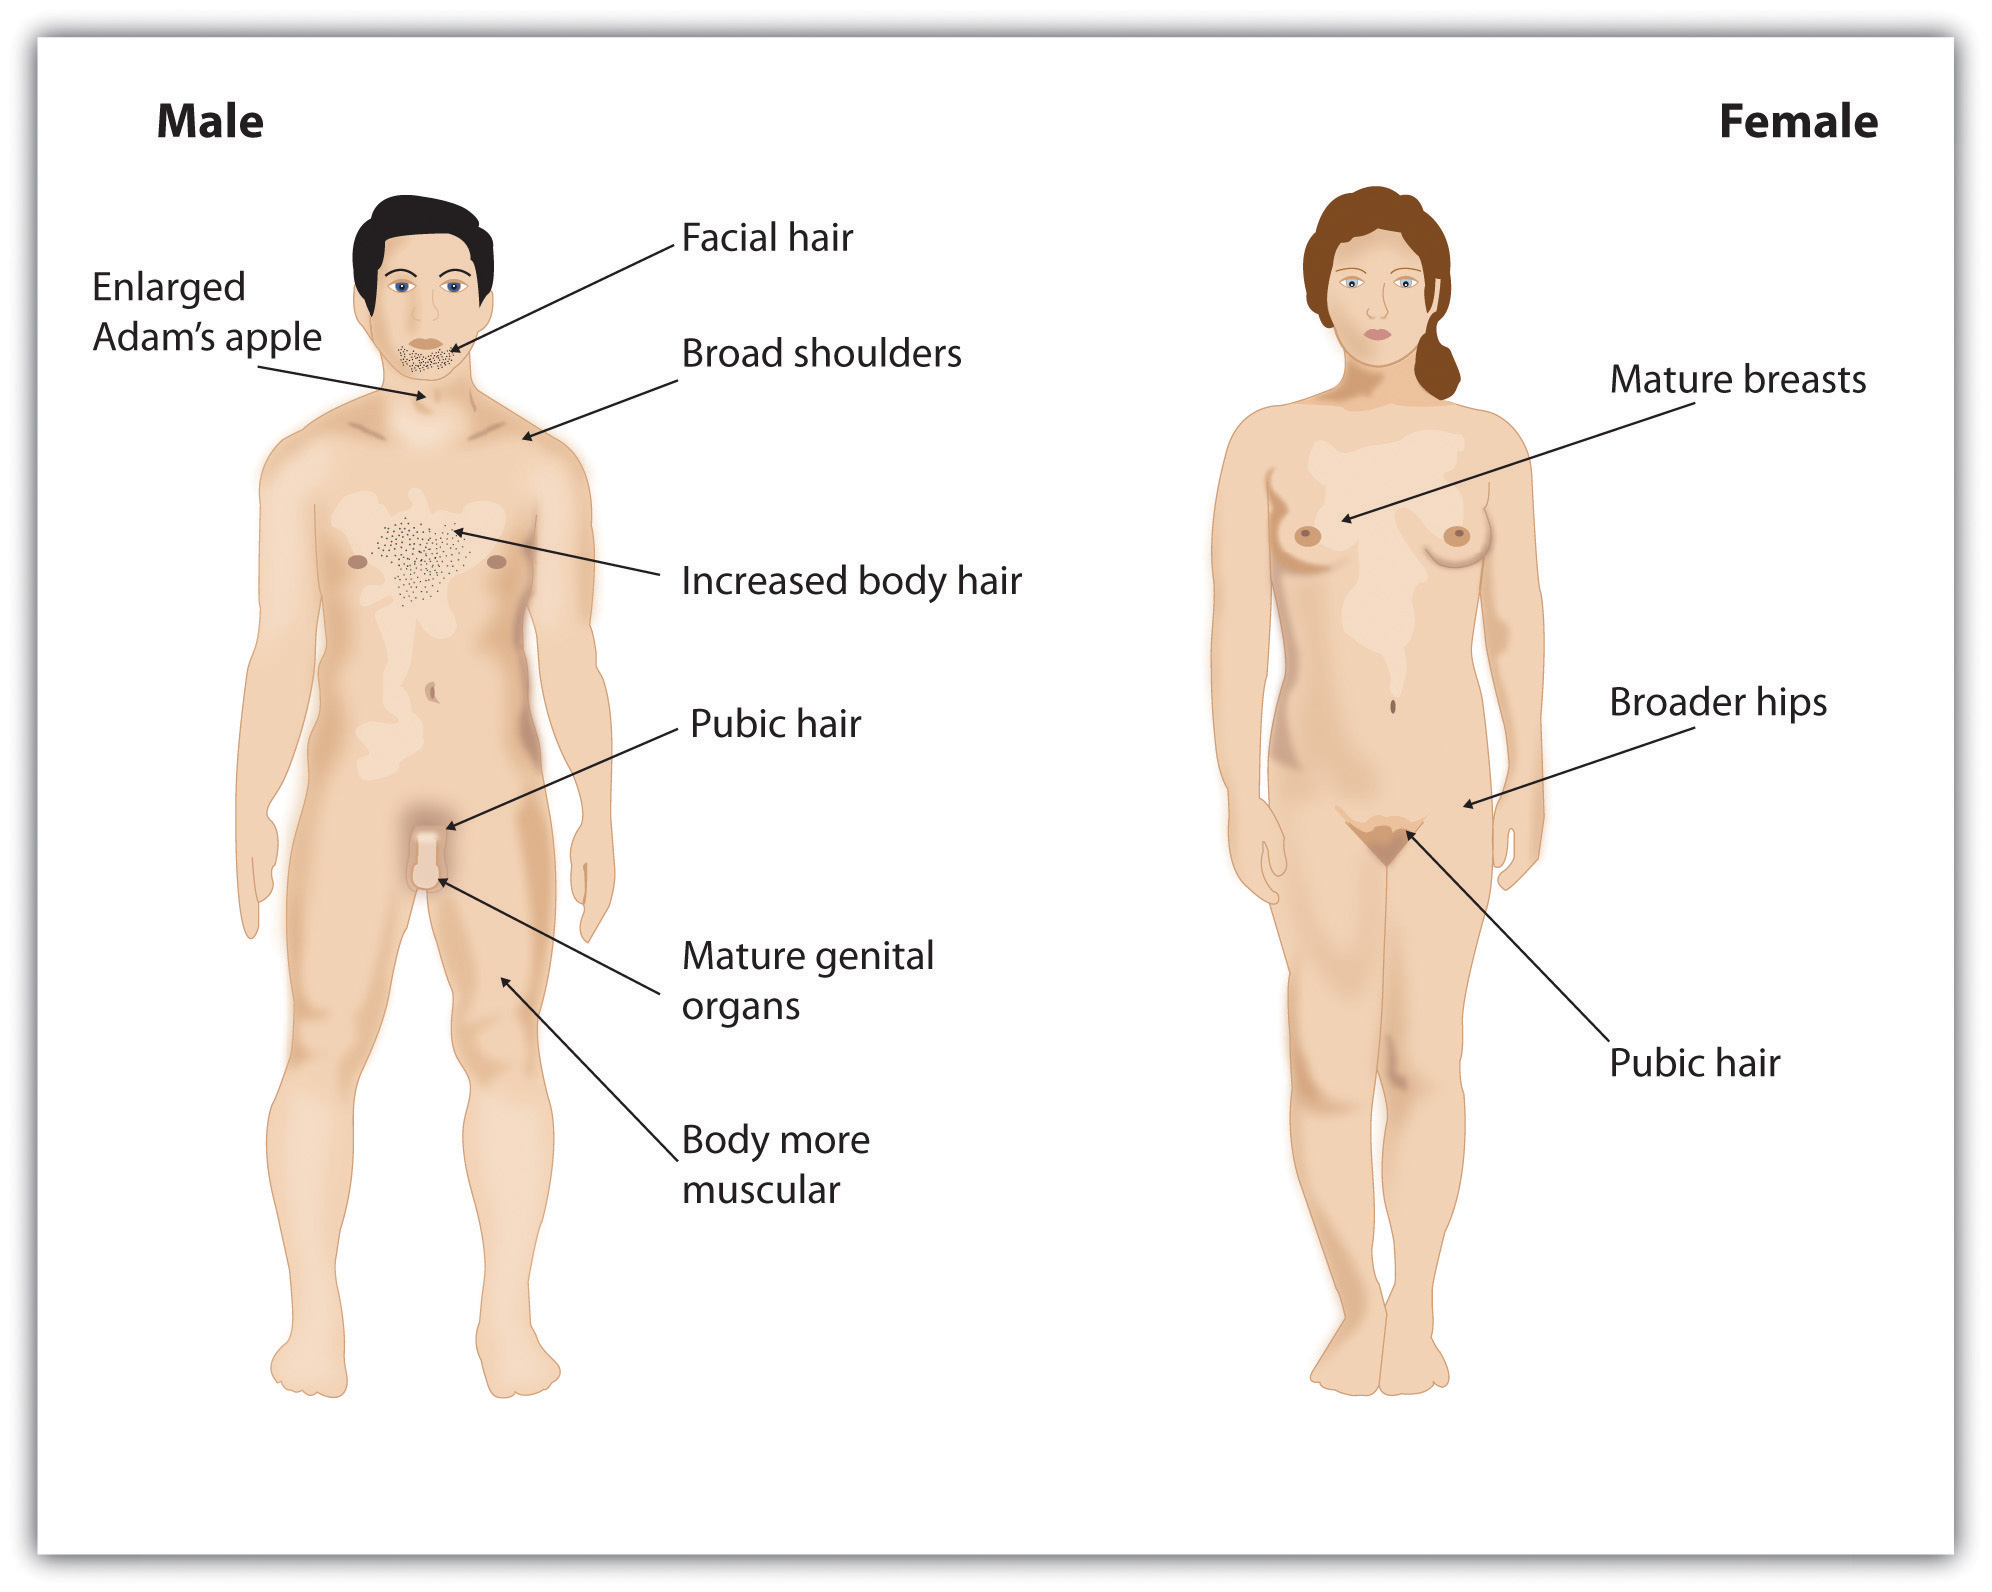 Diagram of sex characteristics, man on left, woman on right